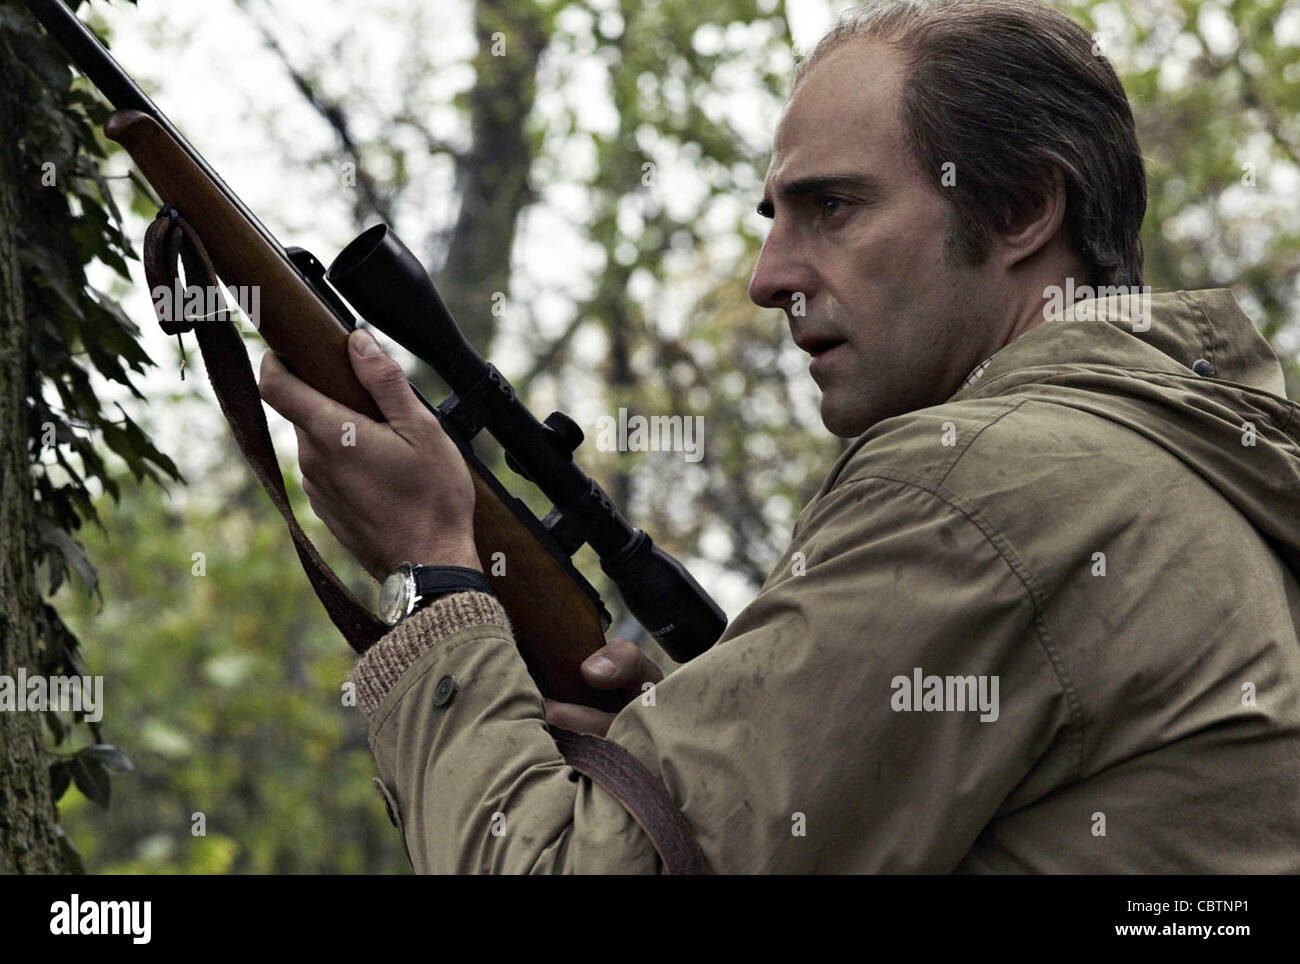 TINKER TAILOR SOLDIER SPY (2011) MARK STRONG TOMAS ALFREDSON (DIR) 005 MOVIESTORE COLLECTION LTD - Stock Image